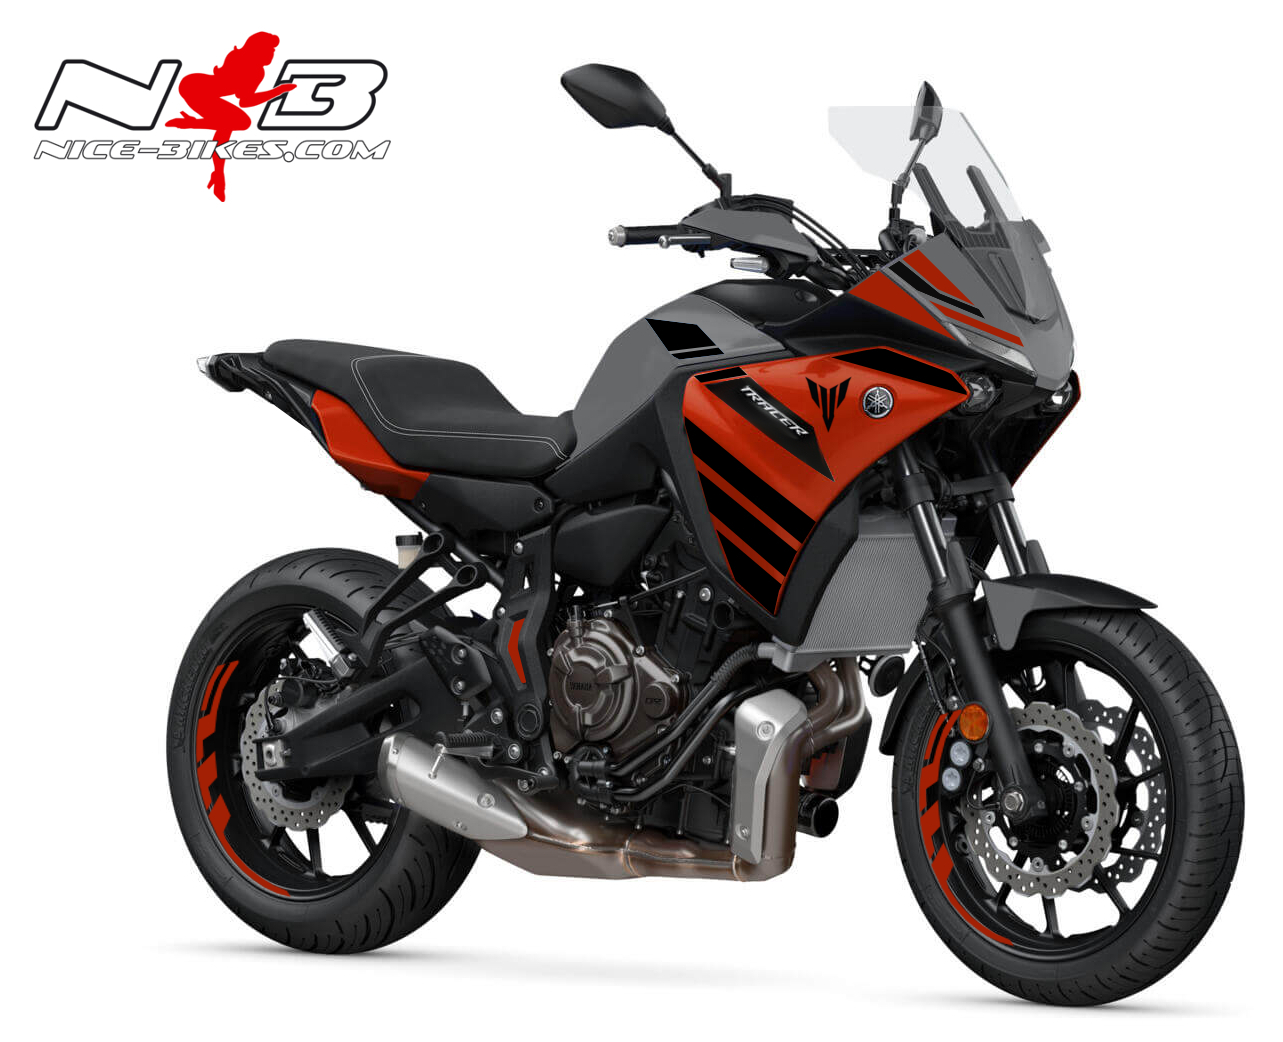 Foliendesign YAMAHA MT07 Tracer Bj. 2020  Racing Red